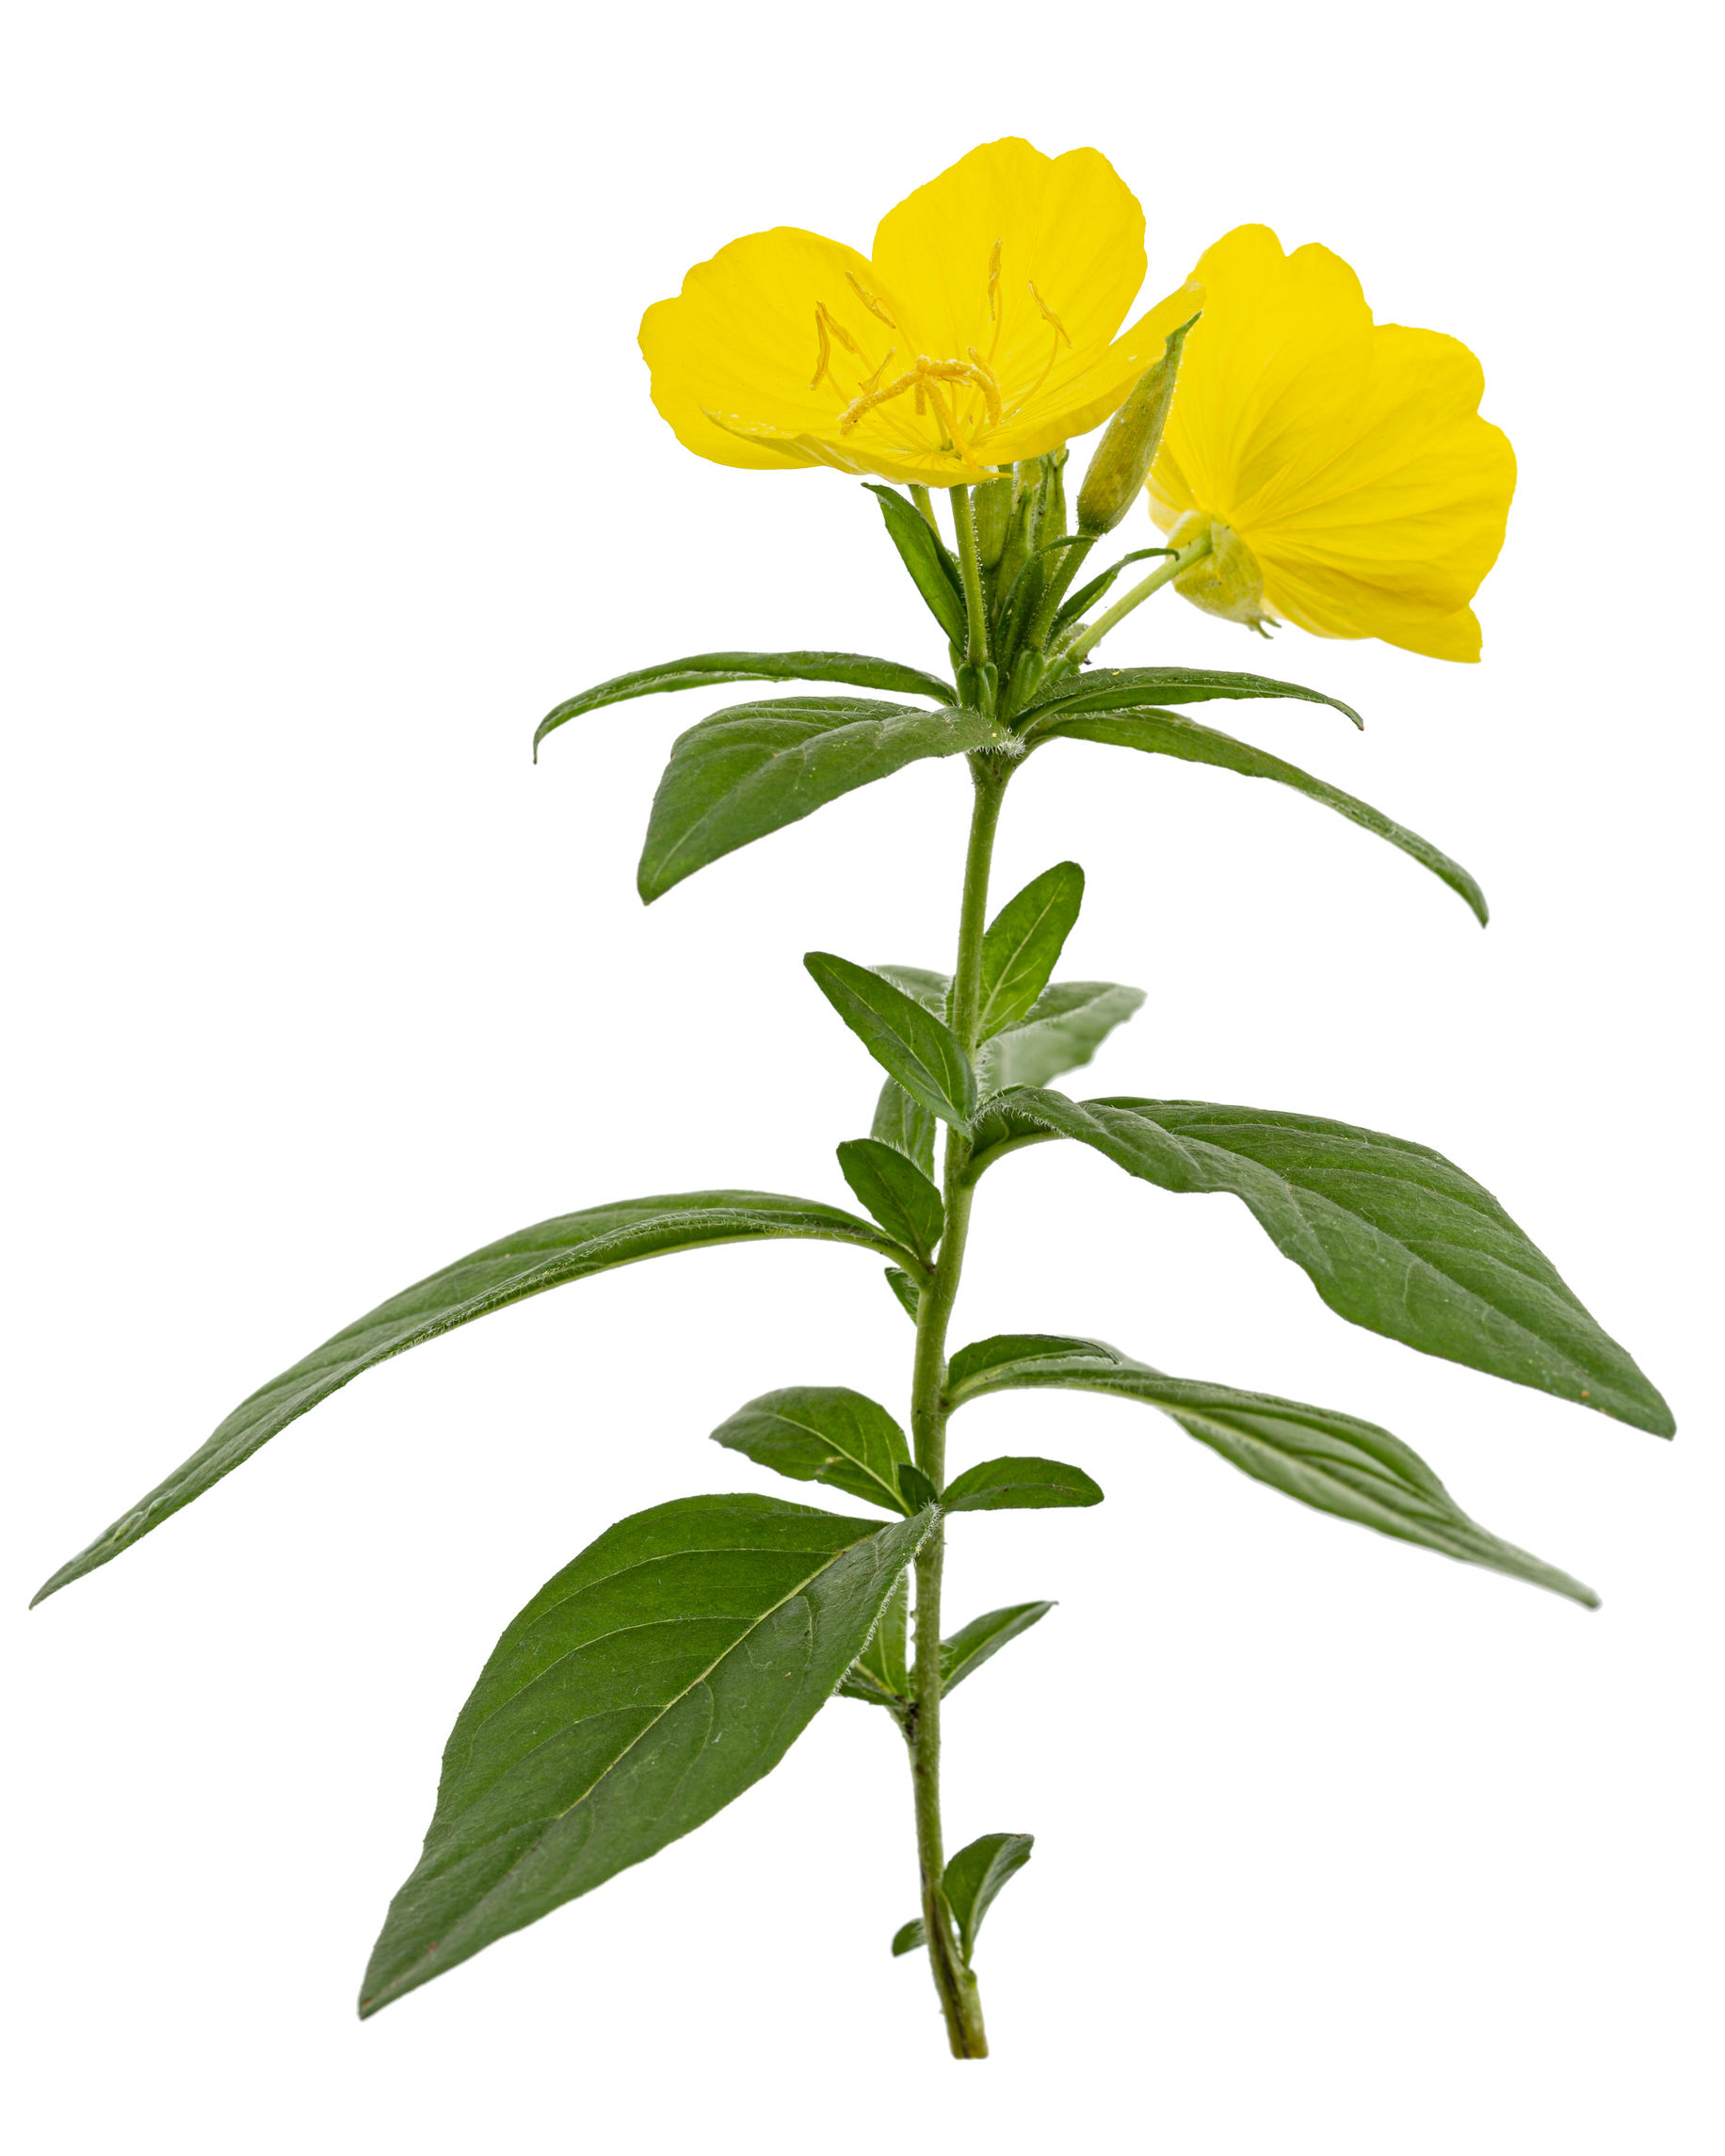 Flower of yellow Evening Primrose, lat. Oenothera, isolated on white background